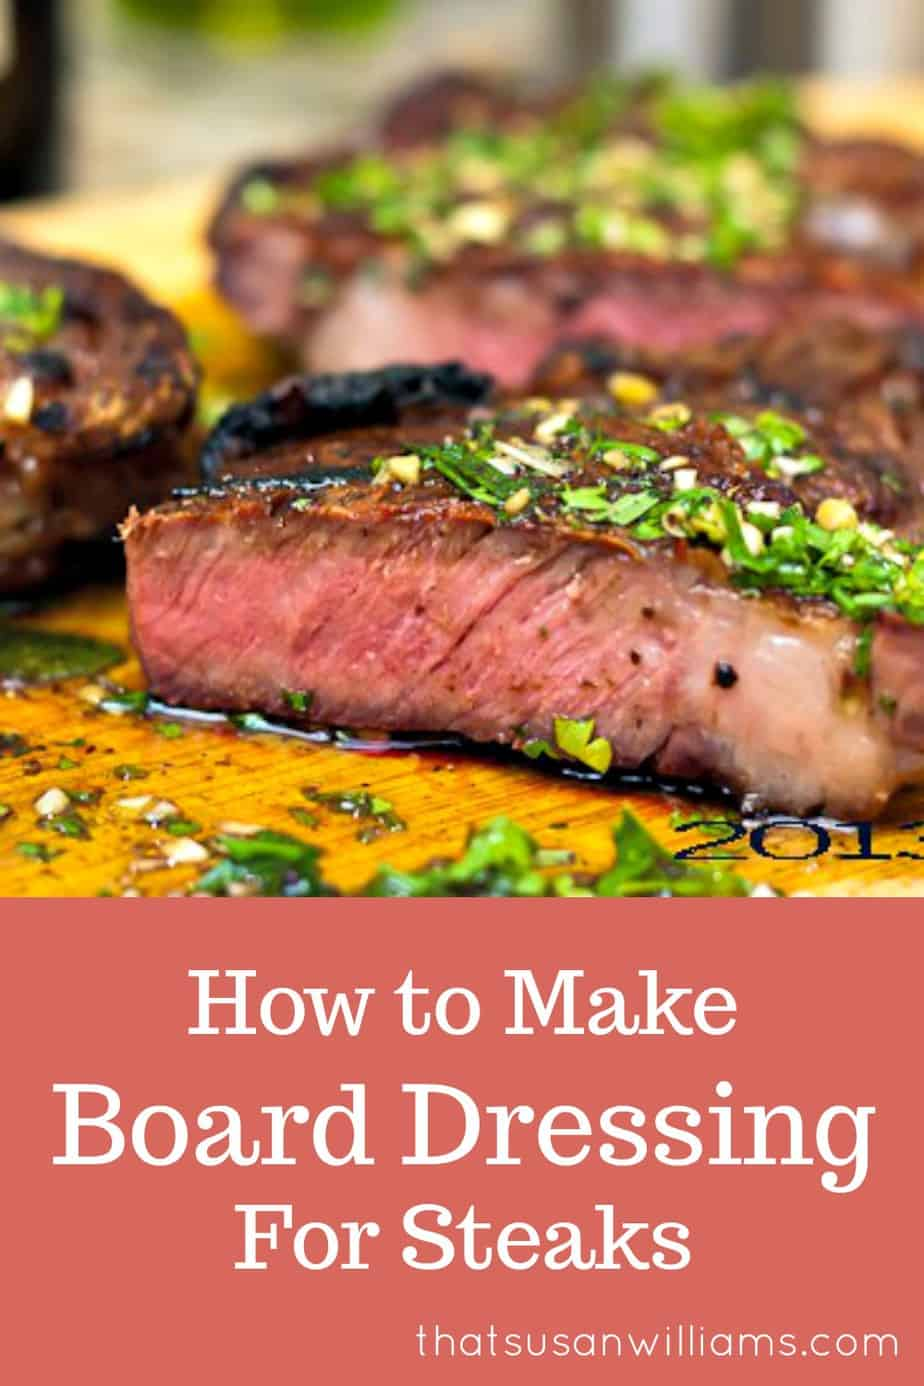 Board Dressing for Steaks